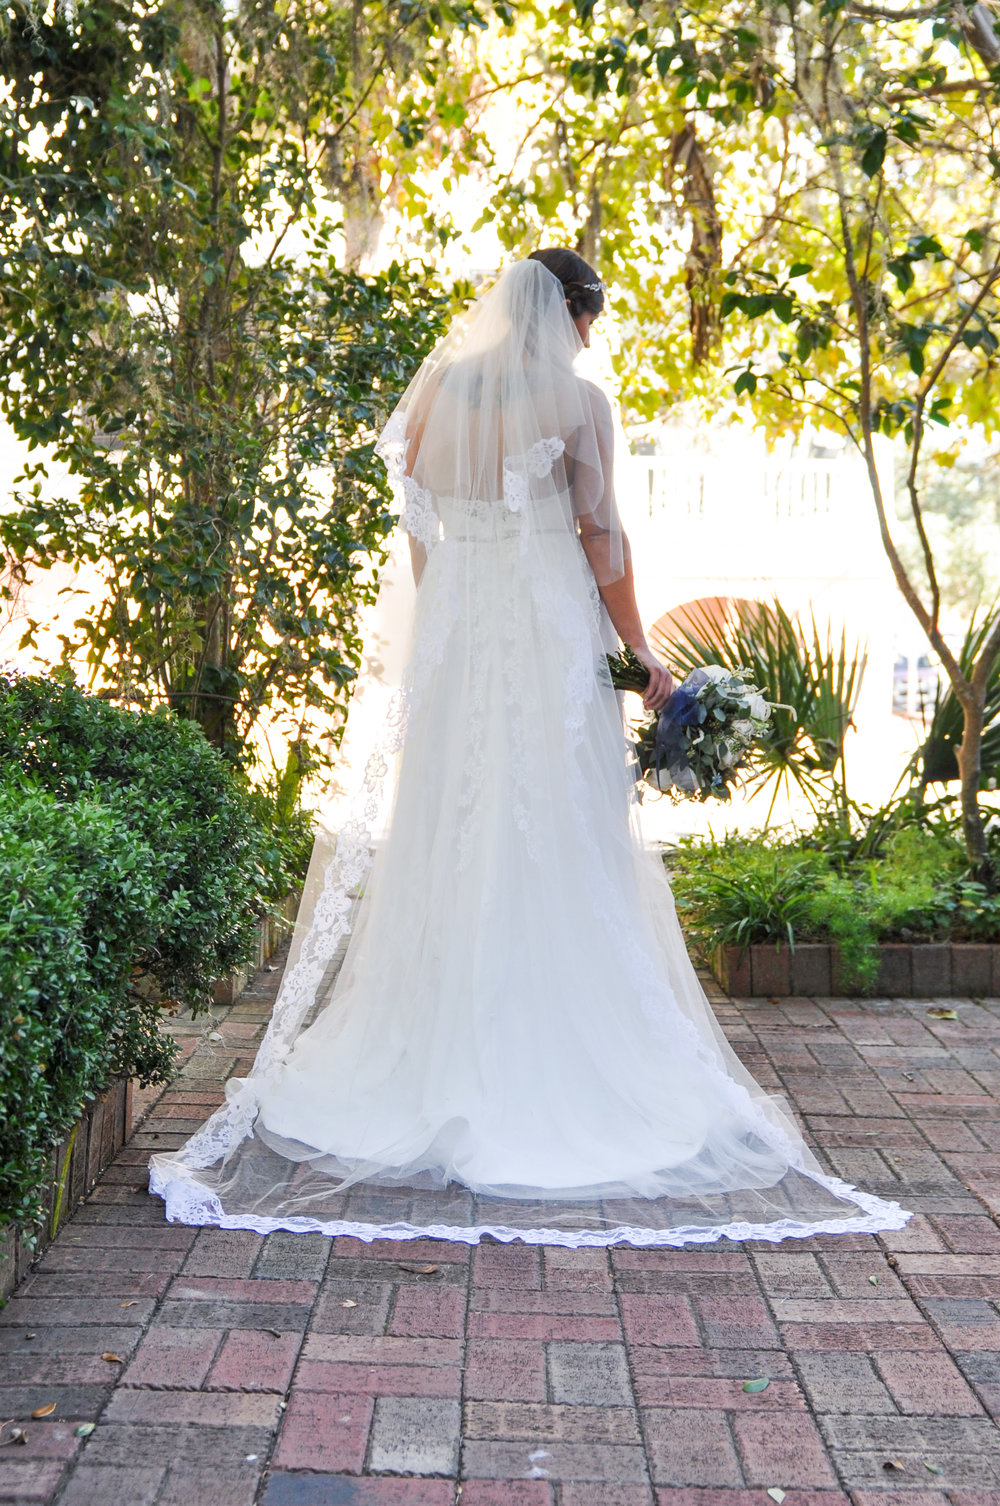 amy-daring-photography-ti-adora-7500-ivory-and-beau-bridal-boutique-savannah-wedding-planner-savannah-bridal-boutique-savannah-wedding-gowns-savannah-bridal-boutique-savannah-weddings-hilton-head-weddings-9.jpg